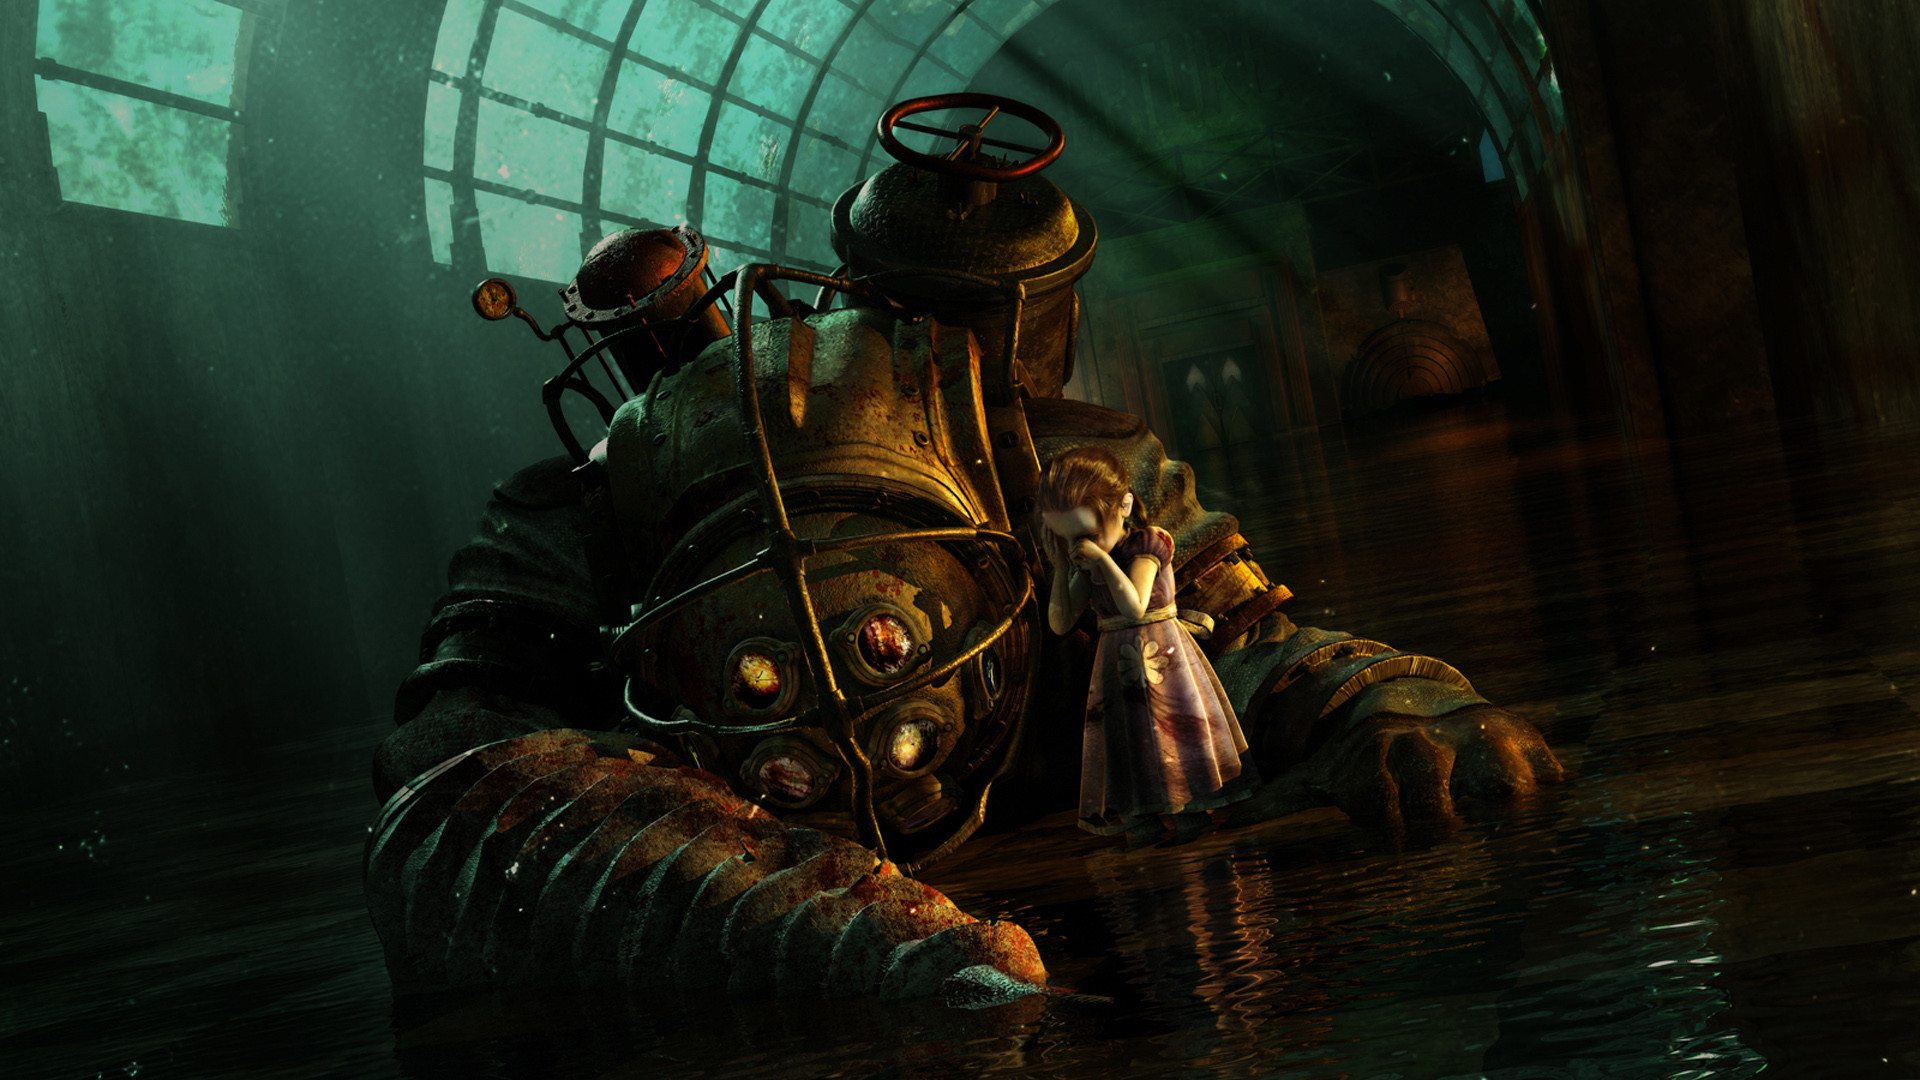 bioshock-the-collection-hub-gallery-gamesoul 01